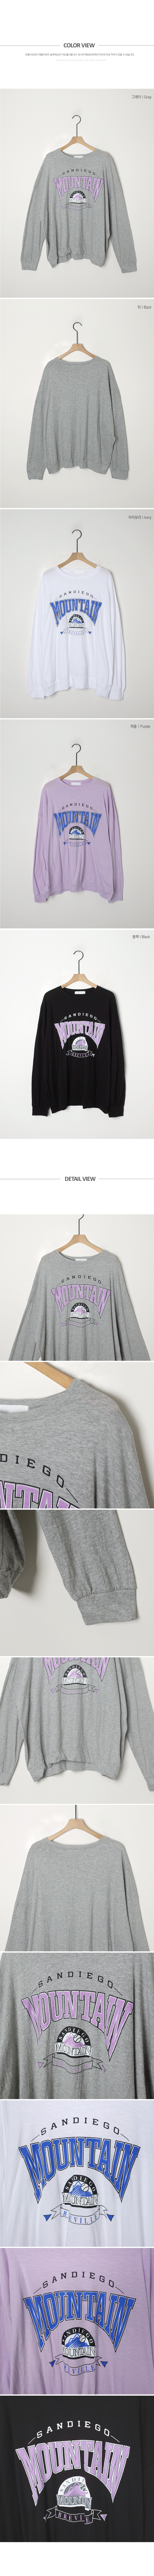 Mountain Mountain Park City Shirt